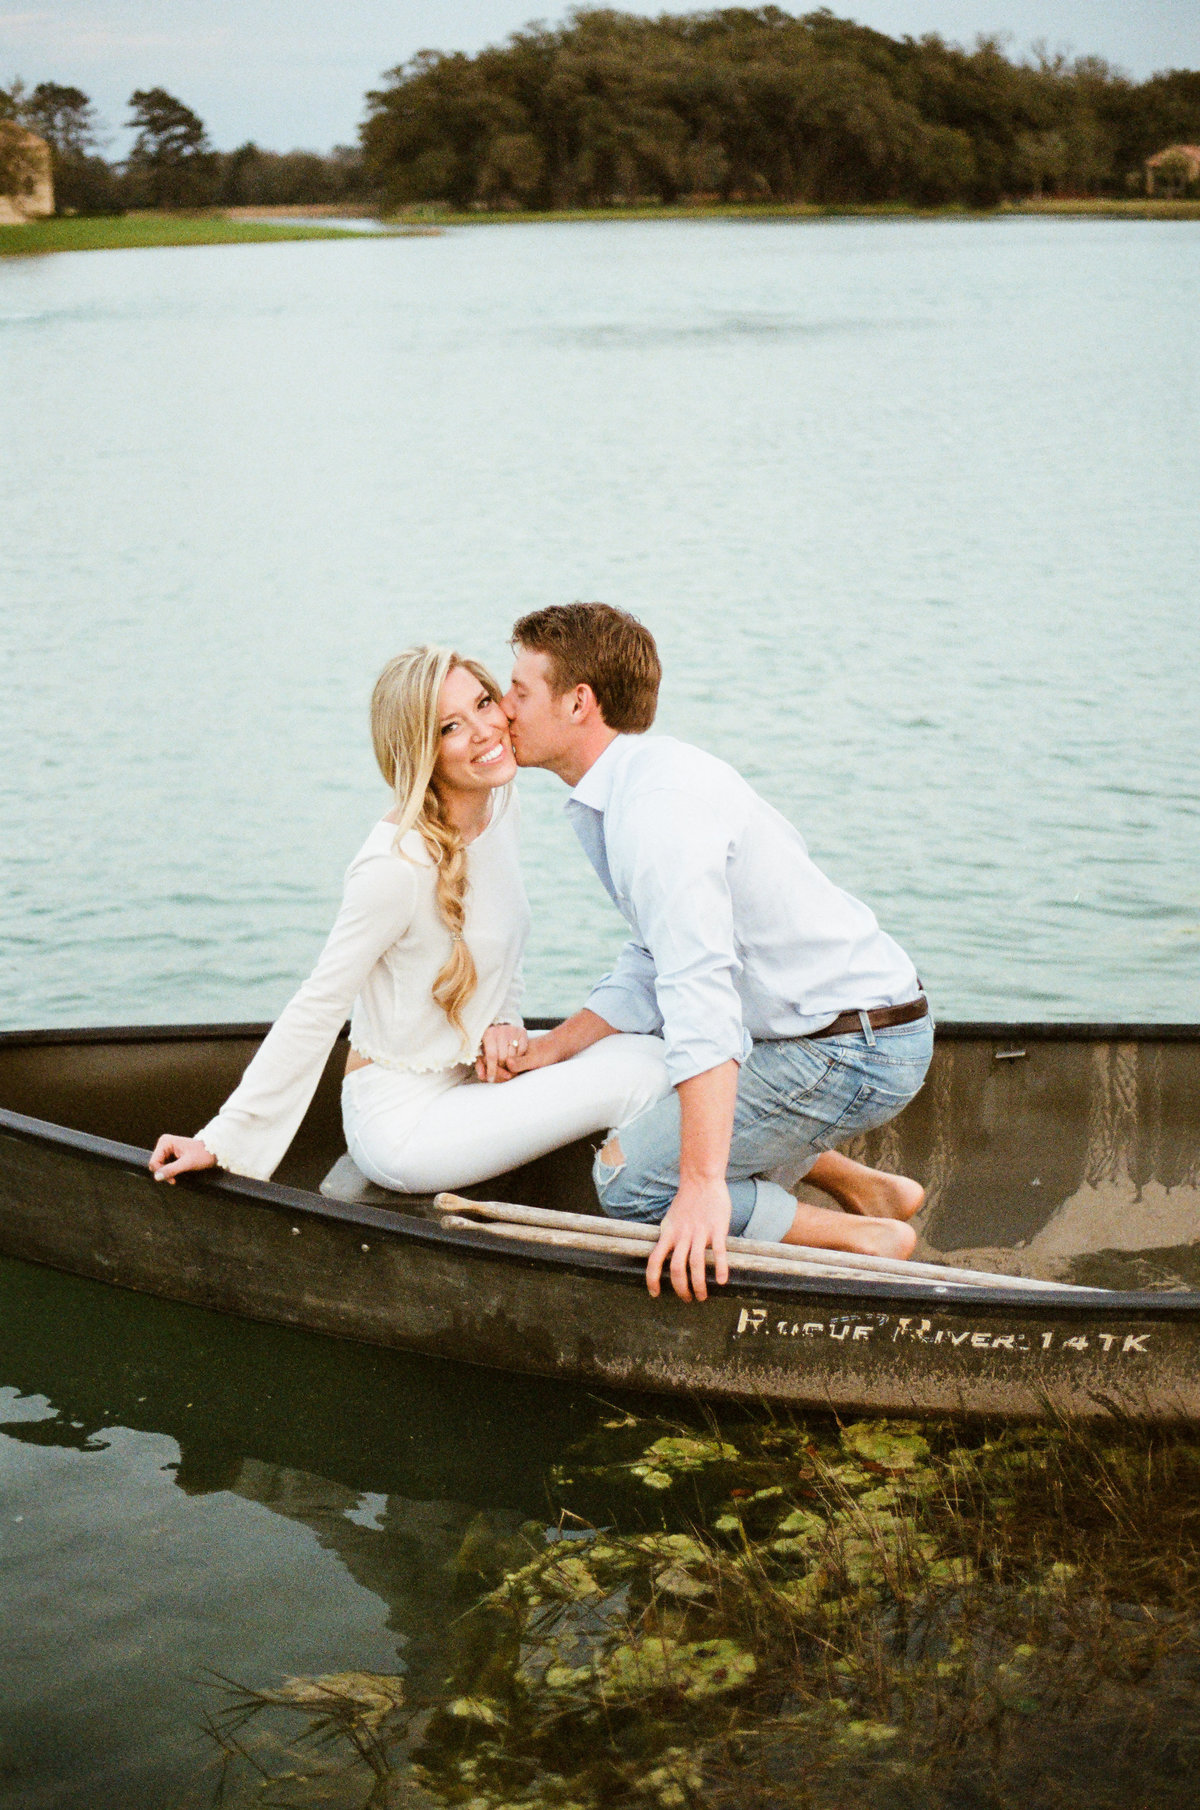 christianne_TAYLOR_holly_smith_austin_alvis_love_royal_oaks_country_club_engagements_couple_photos_photography-118